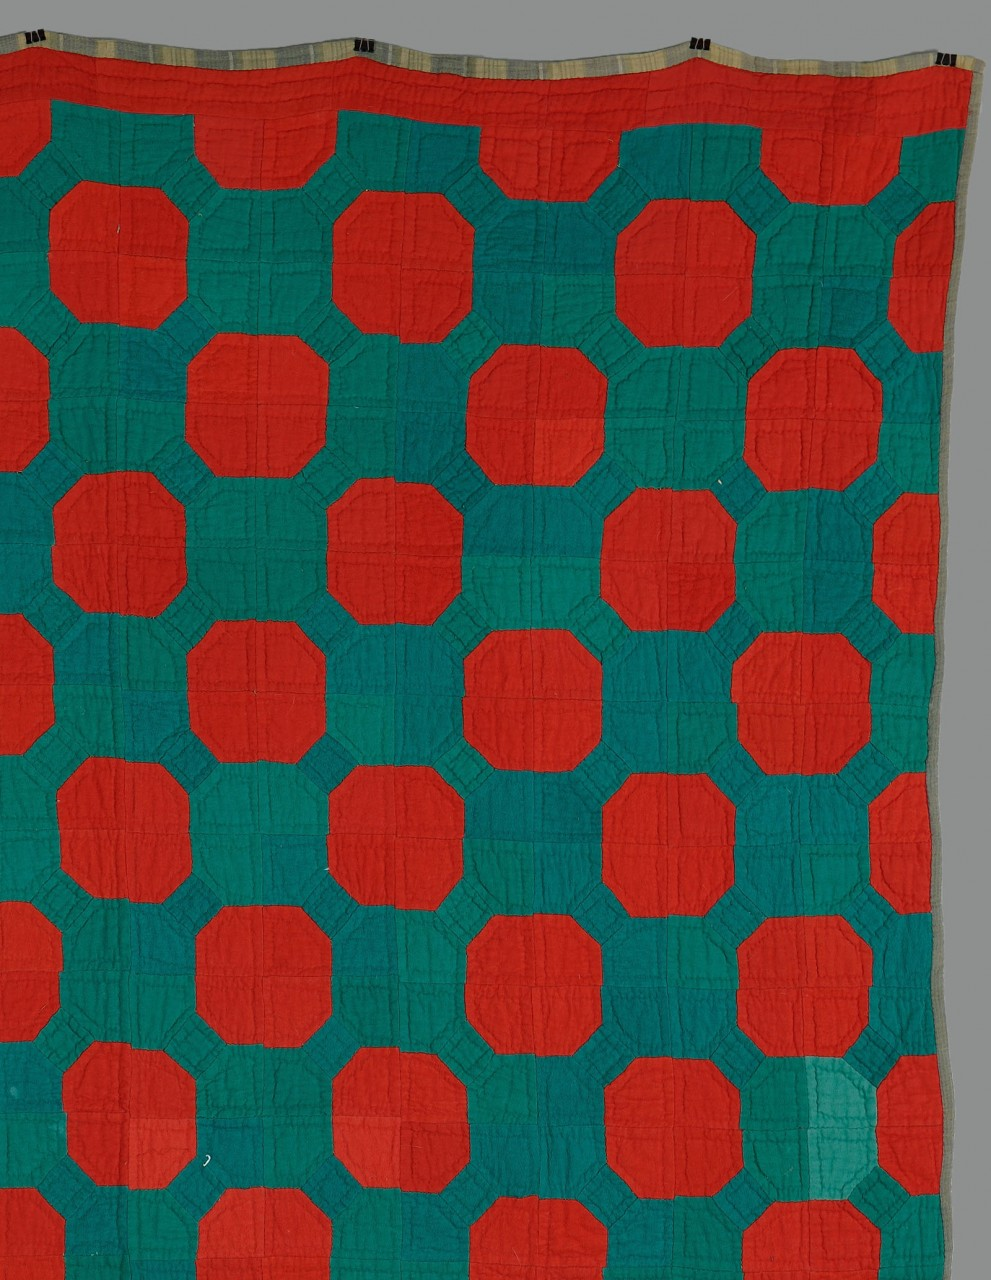 Lot 648: Pennsylvania red and green quilt